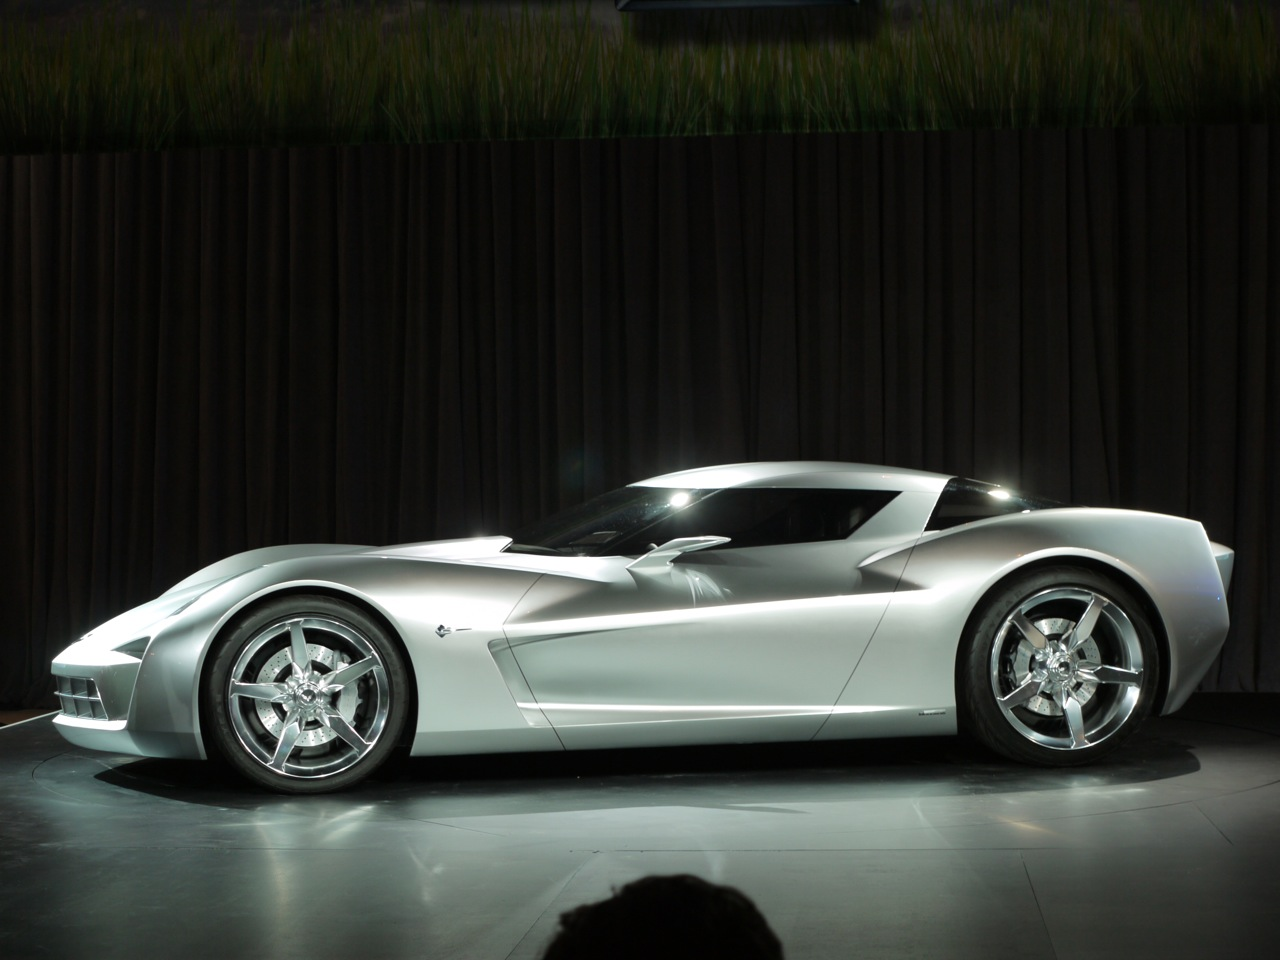 Certified Pre Owned Bmw >> Chicago 2009: Corvette Stingray Concept LIVE Photo Gallery - Autoblog